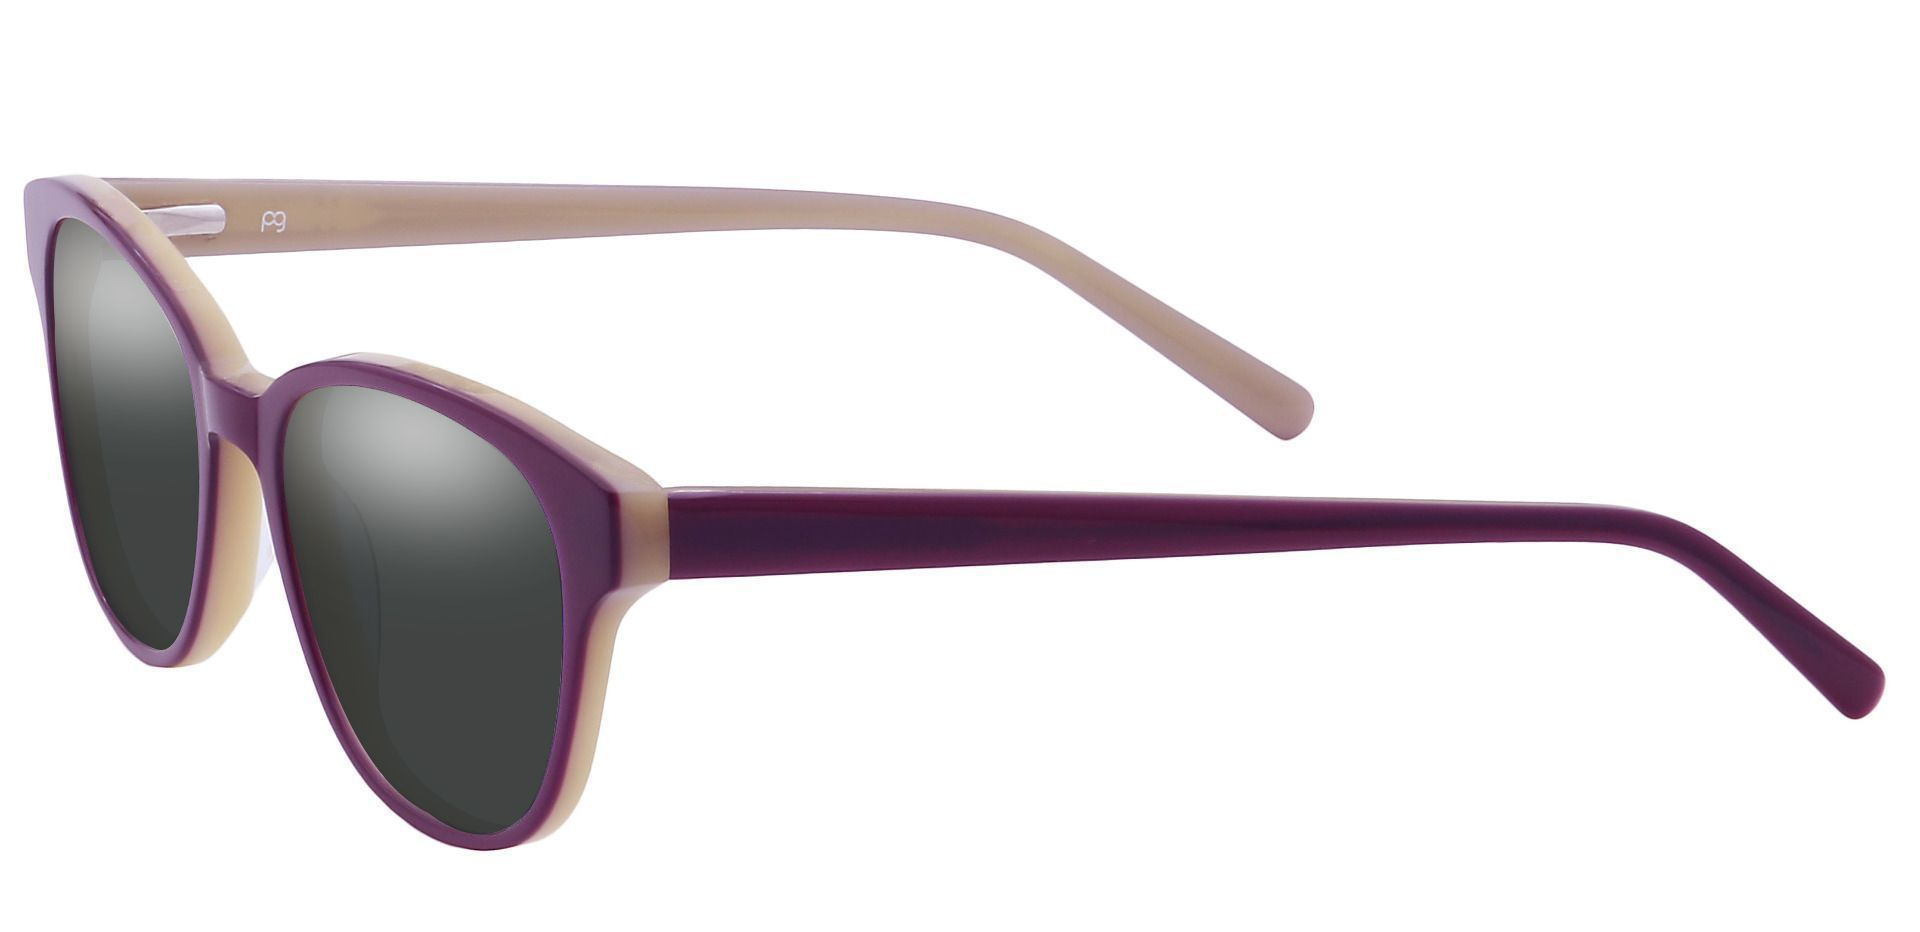 Elan Classic Square Non-Rx Sunglasses - Purple Frame With Gray Lenses